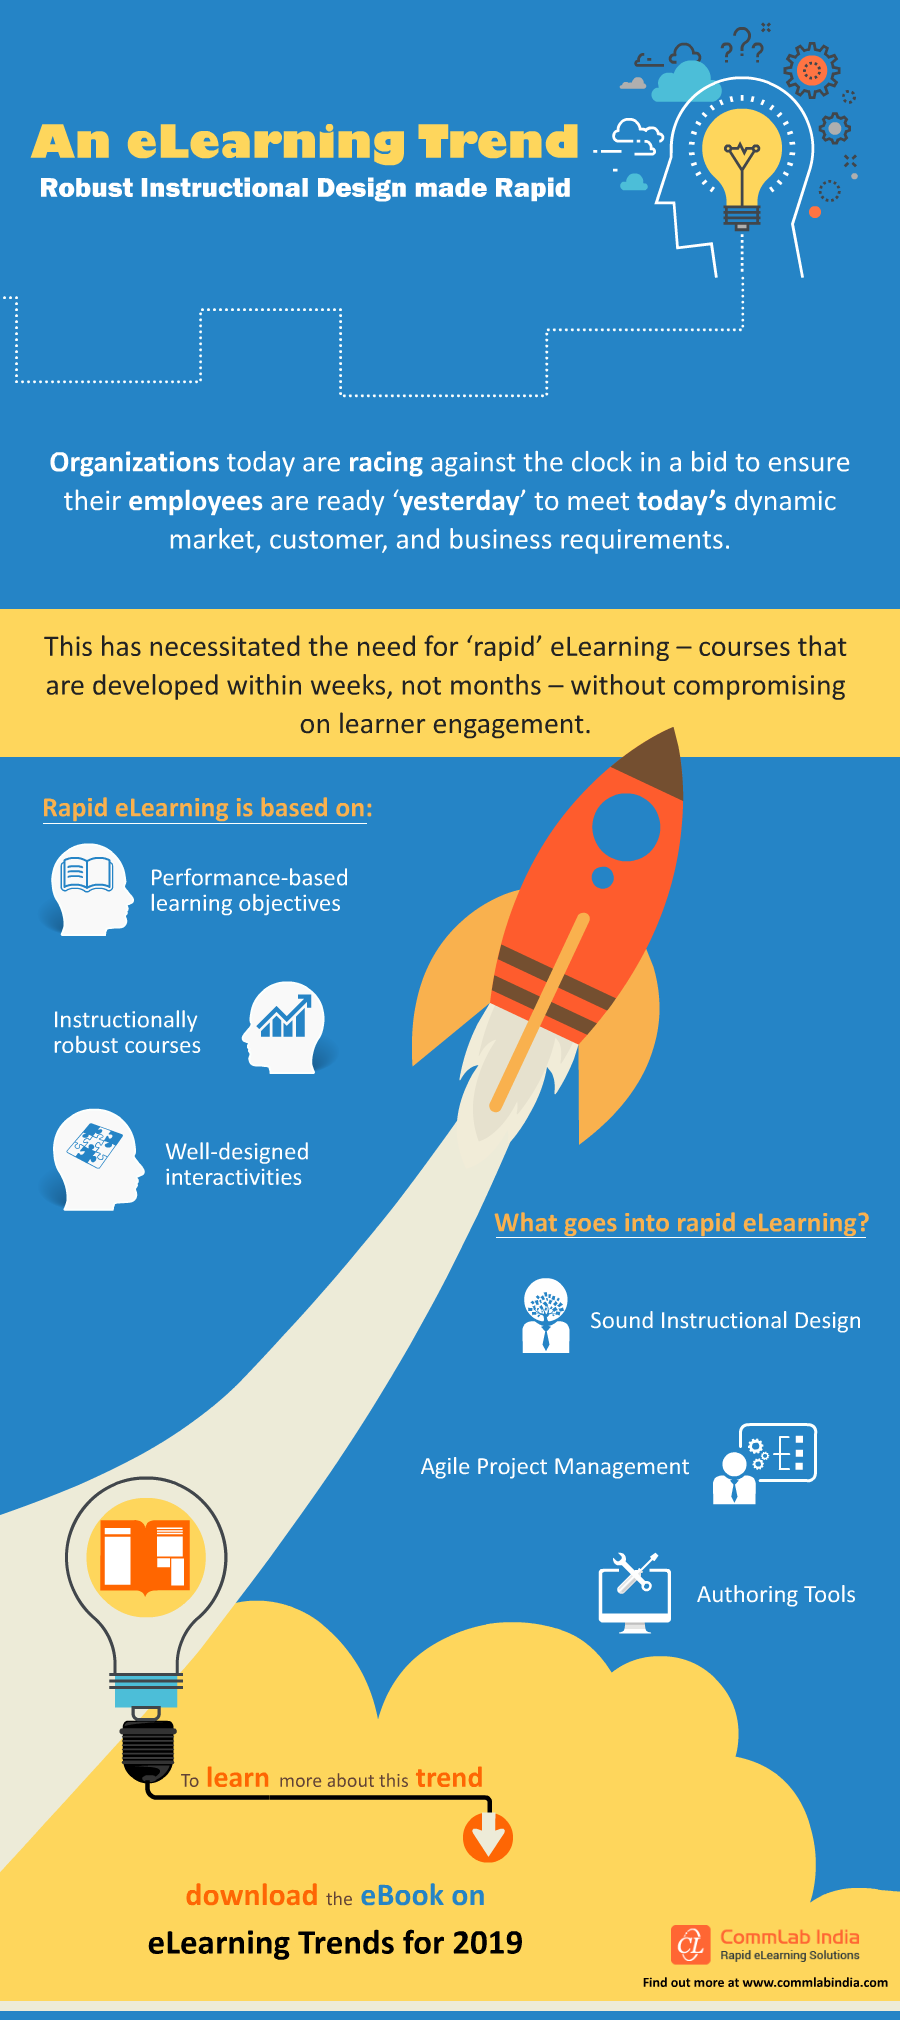 An E-Learning Trend: Robust Instructional Design made Rapid [Infographic]